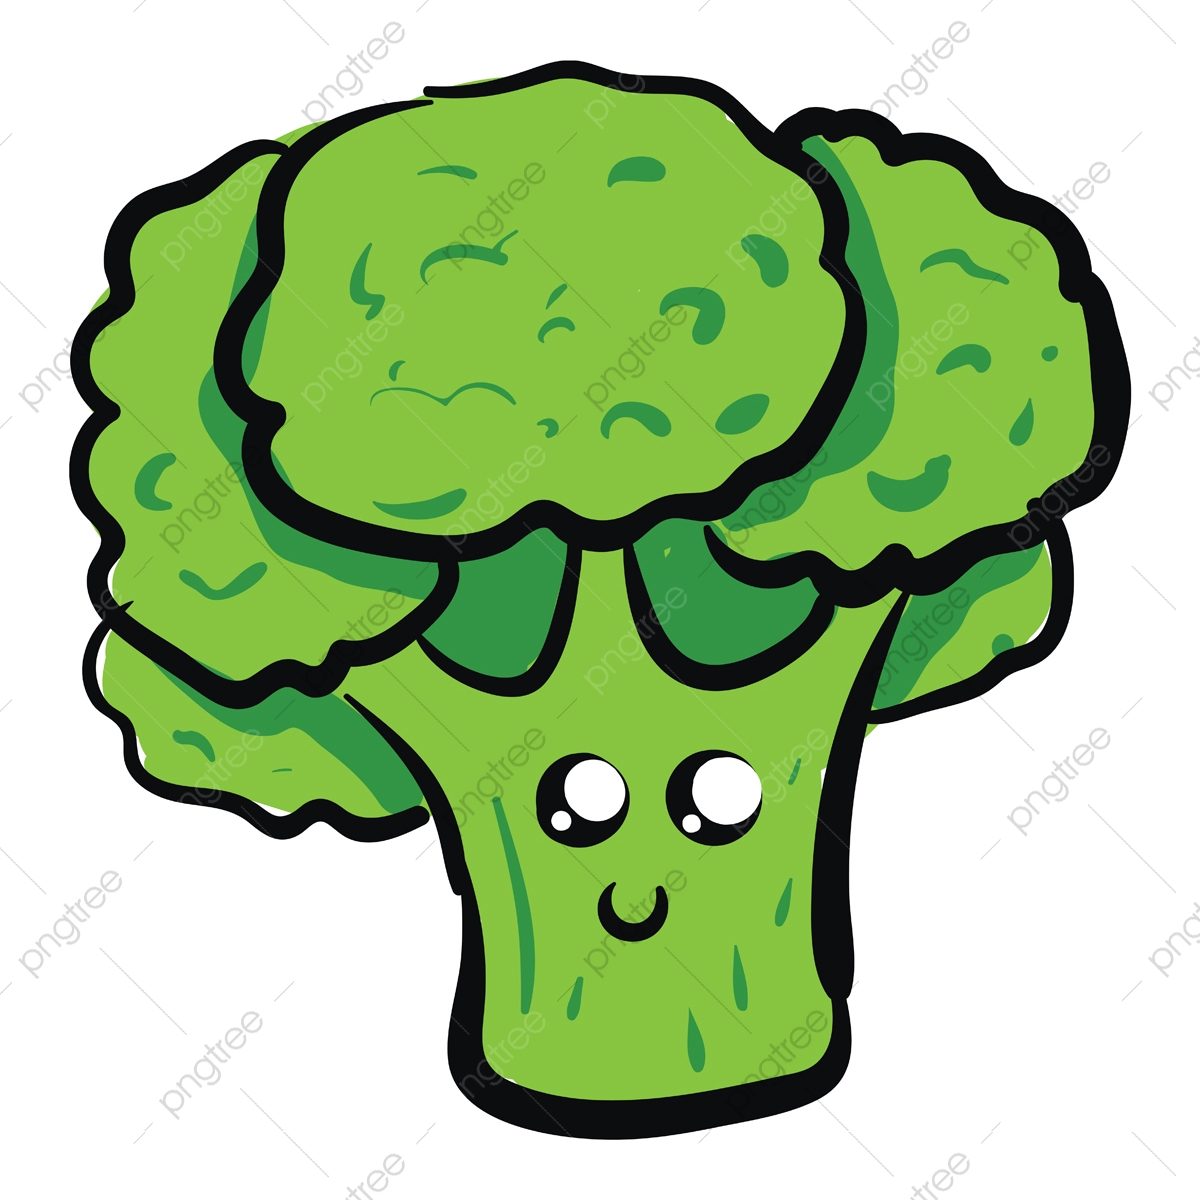 image of cute broccoli broccoli vector or color illustration cute broccoli vegetable png and vector with transparent background for free download https pngtree com freepng image of cute broccoli broccoli vector or color illustration 5274362 html